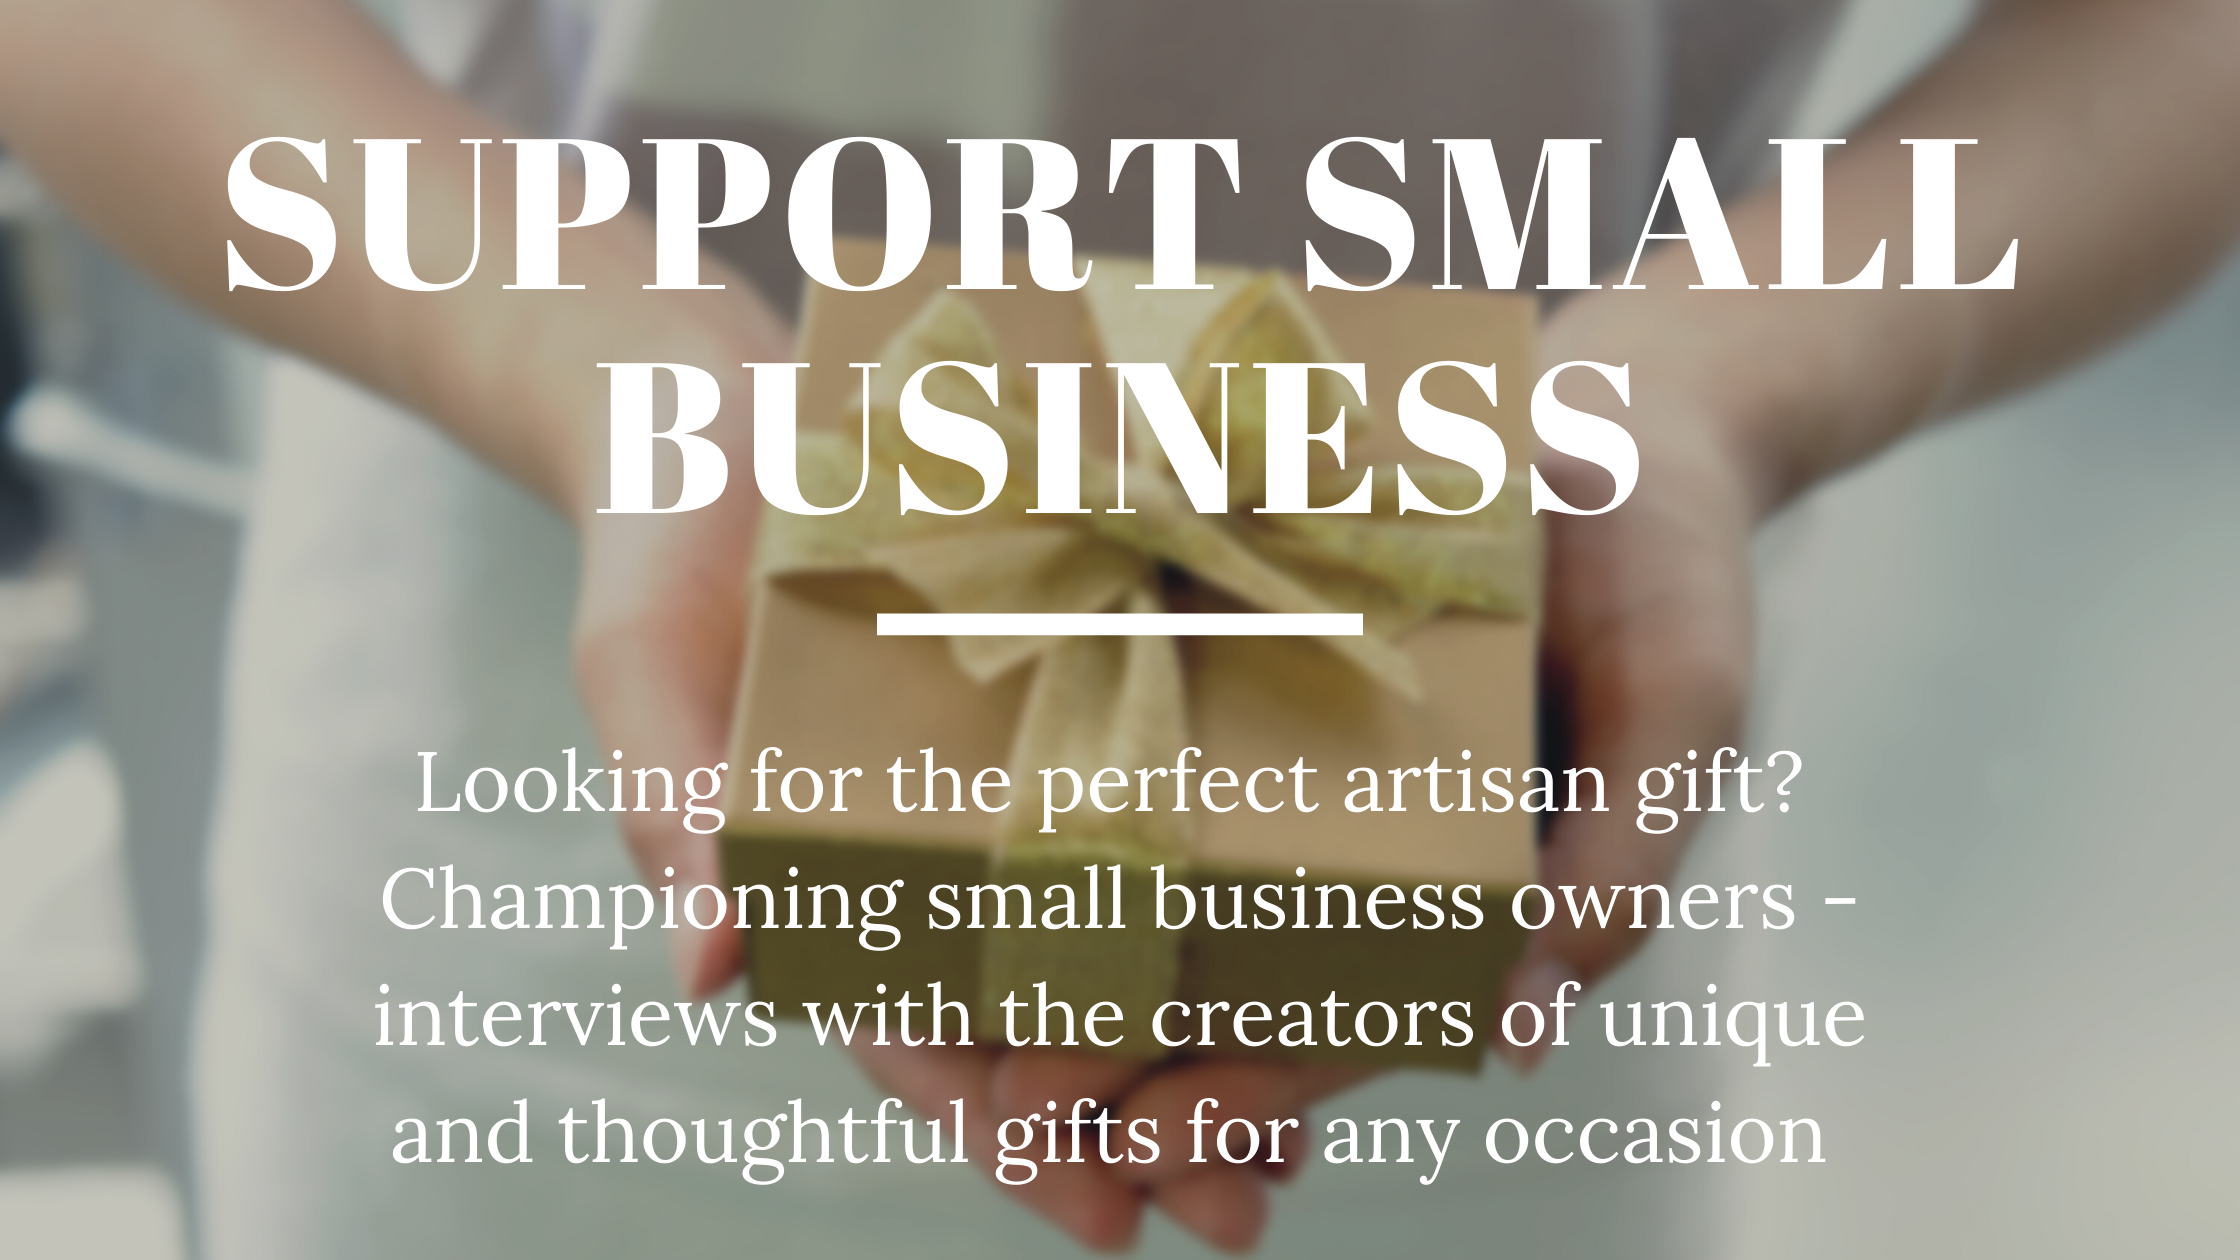 Support Small Business - looking for perfect artisan gifts? Championing small business owners - interviews with the creators of unique and thoughtful gifts for any occasion